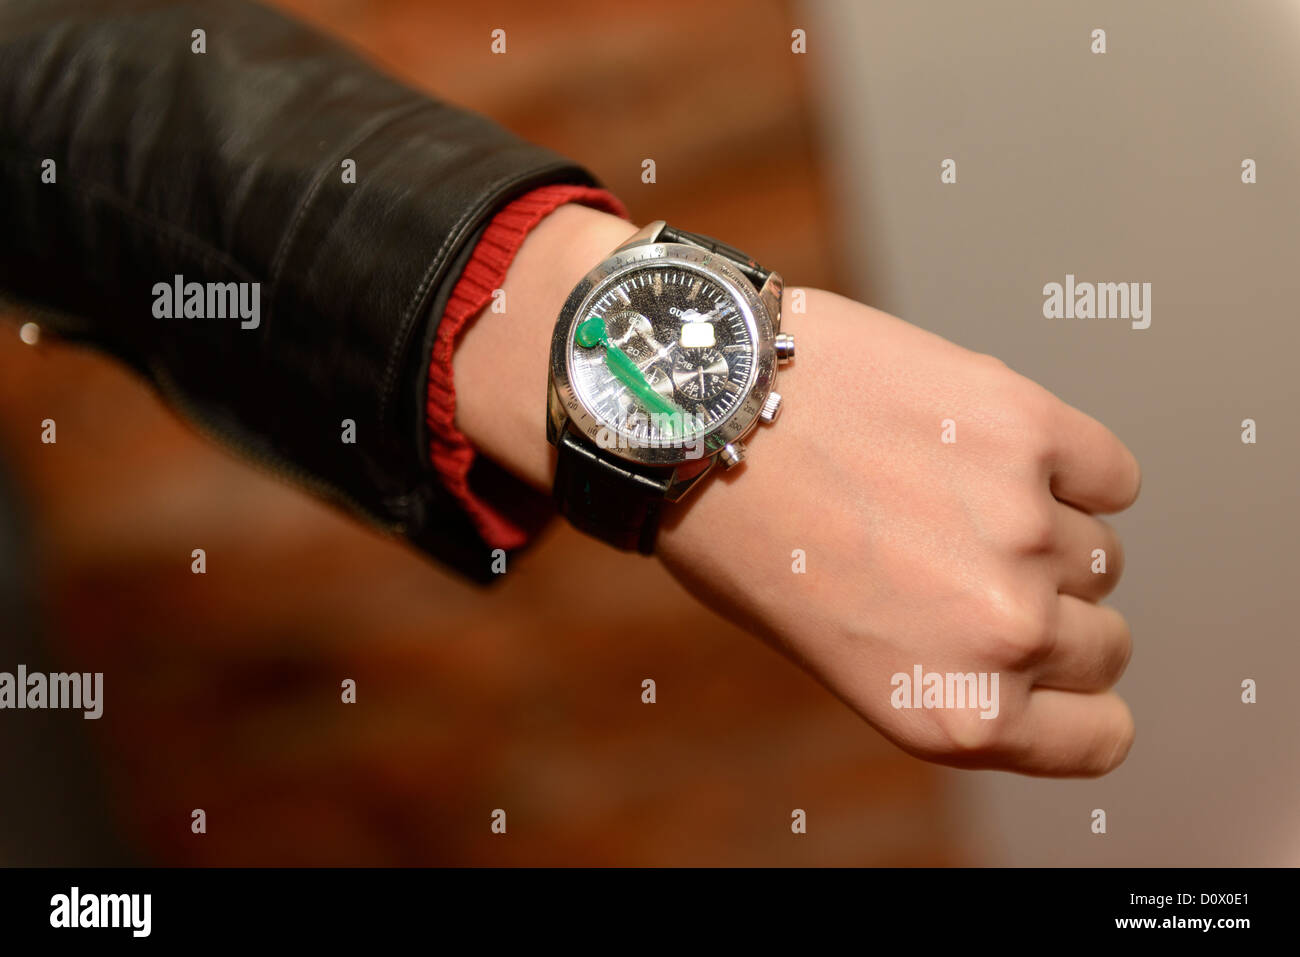 watch spoiled spot luxury paint hand - Stock Image